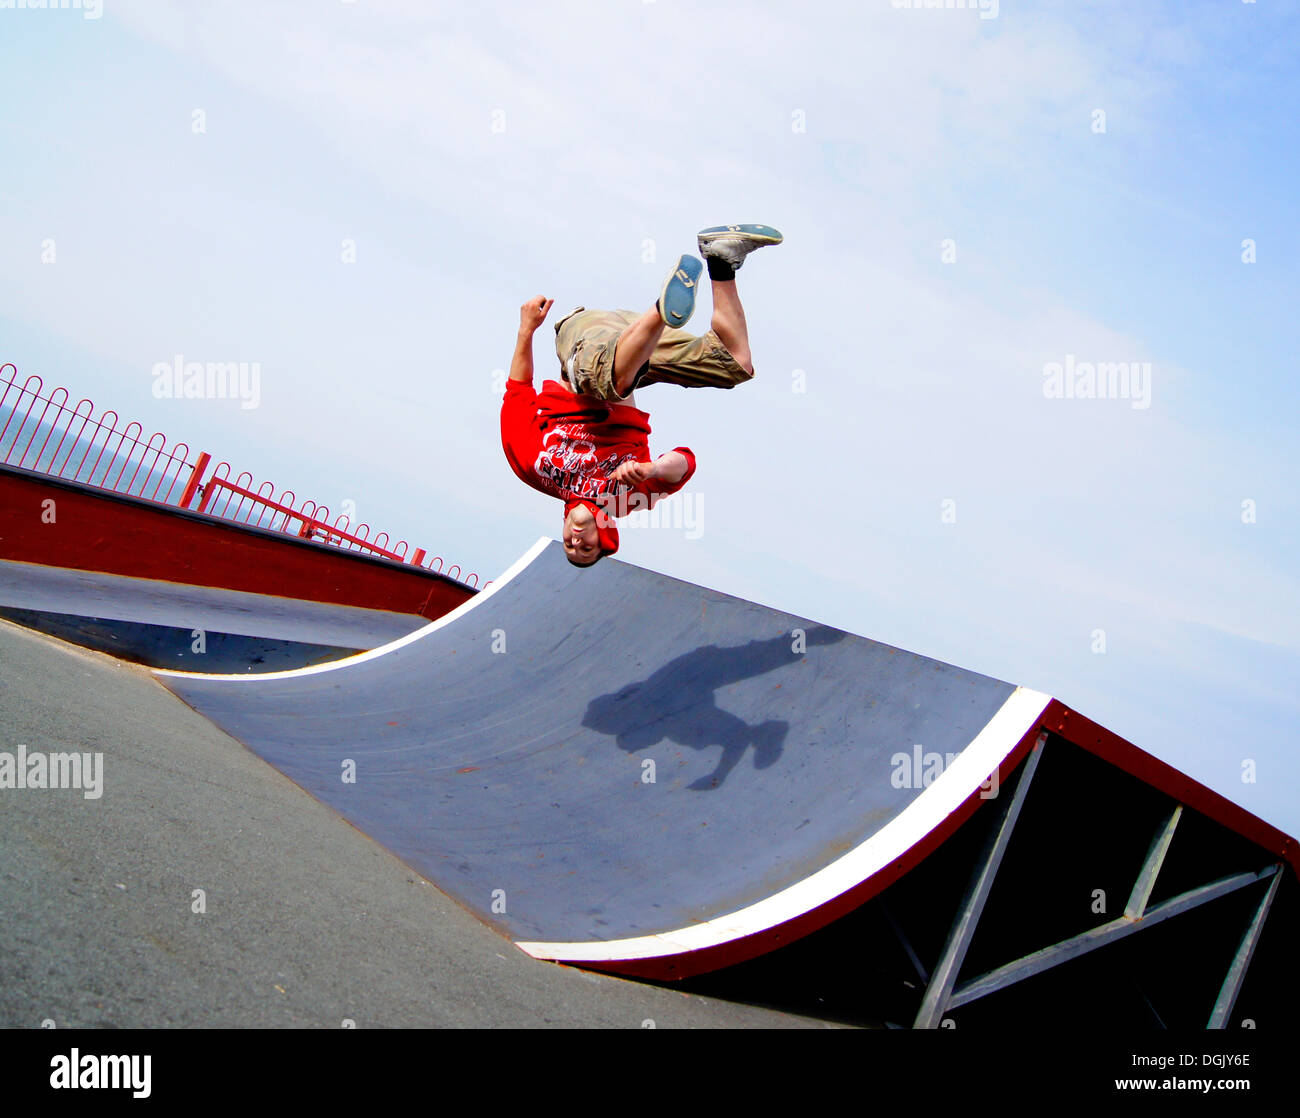 A parkour athlete performing a somersault. - Stock Image